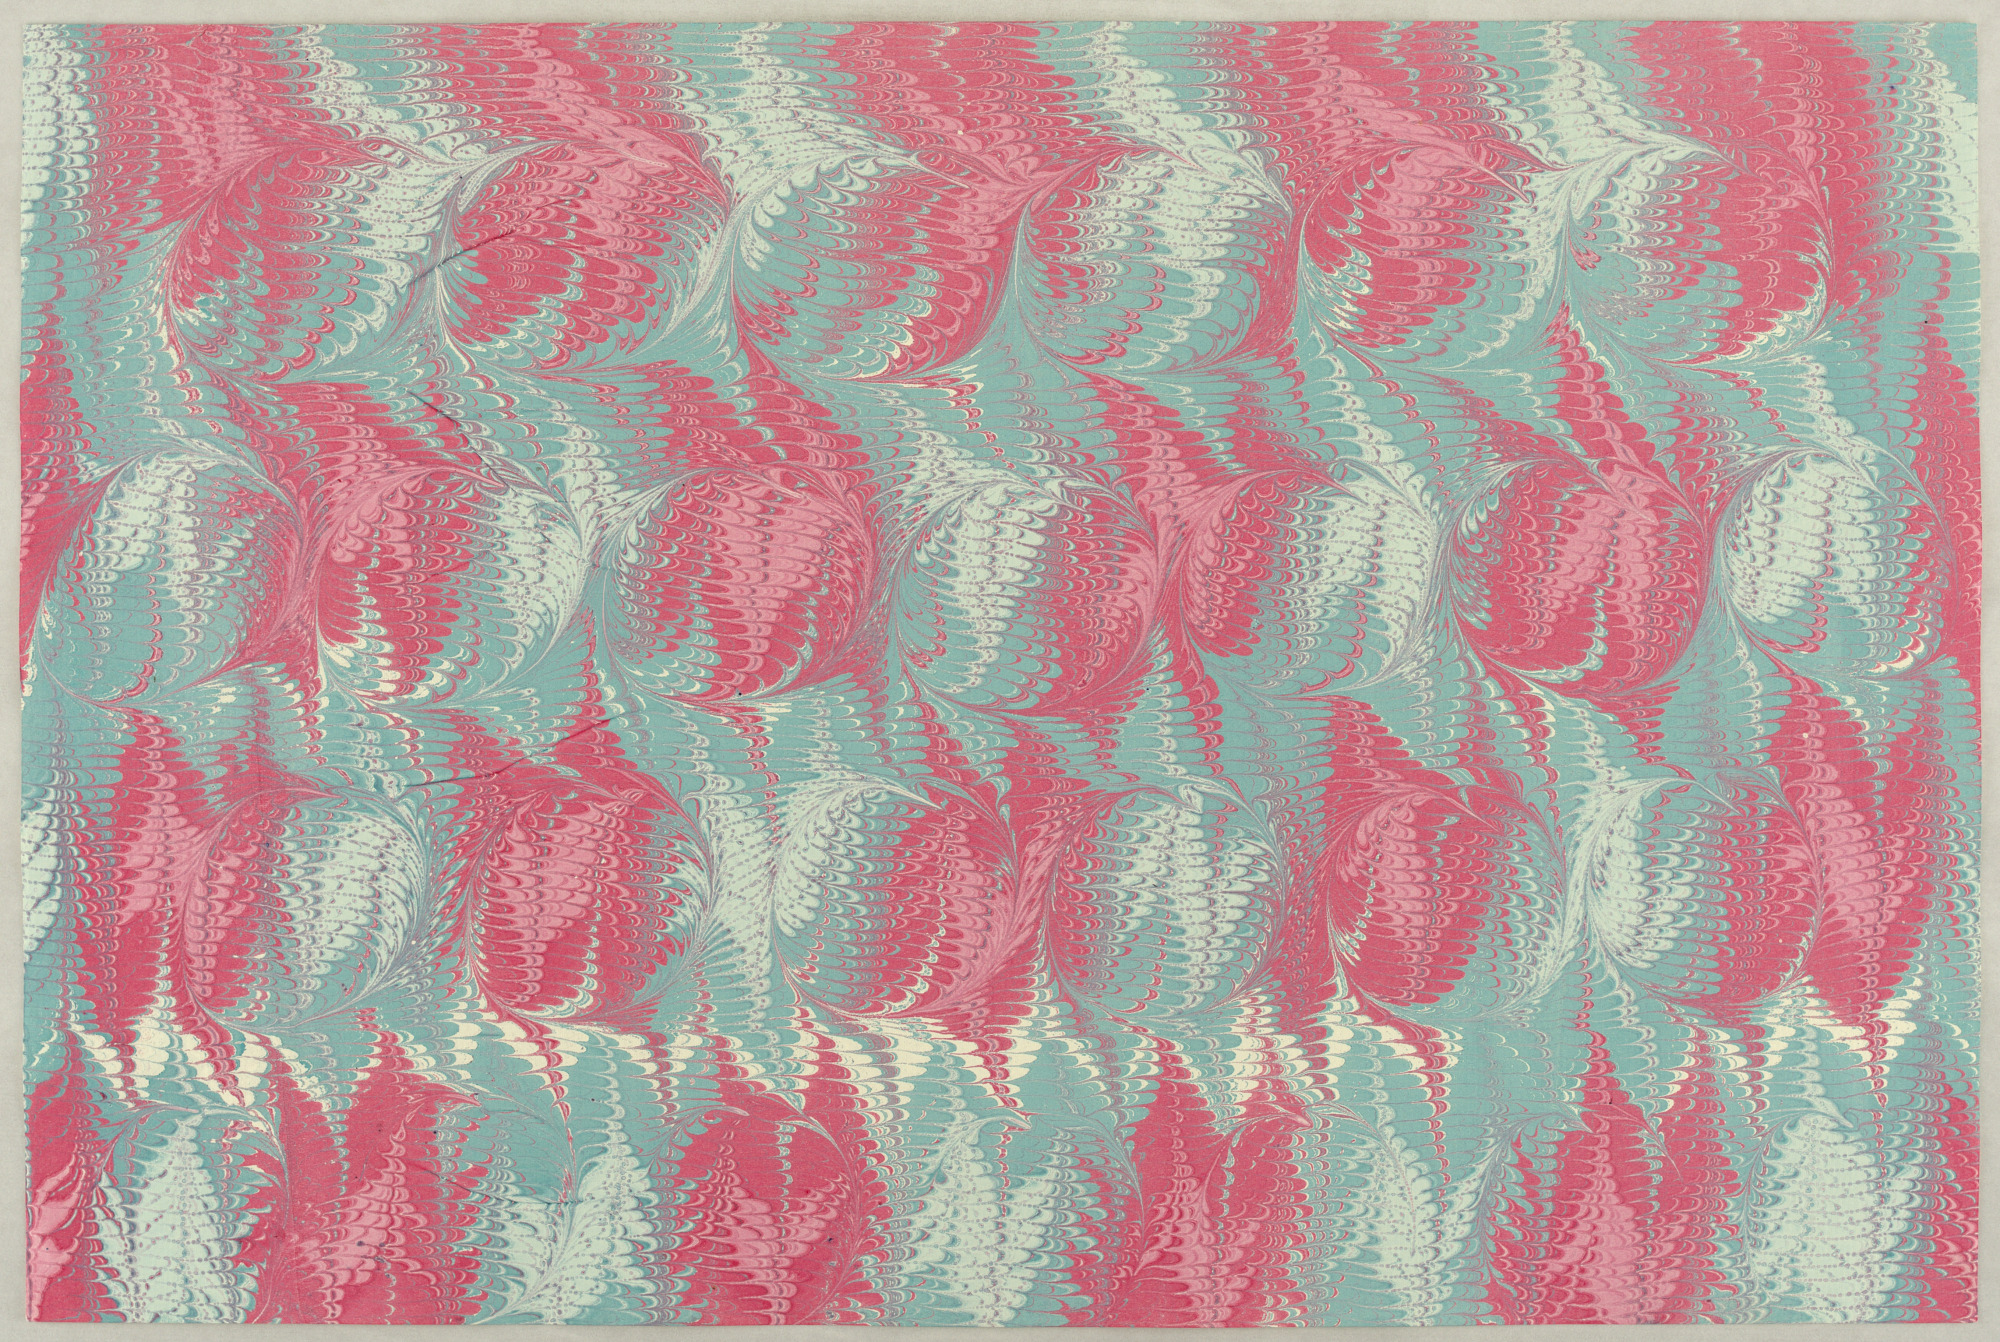 Book paper: Combed marbled paper